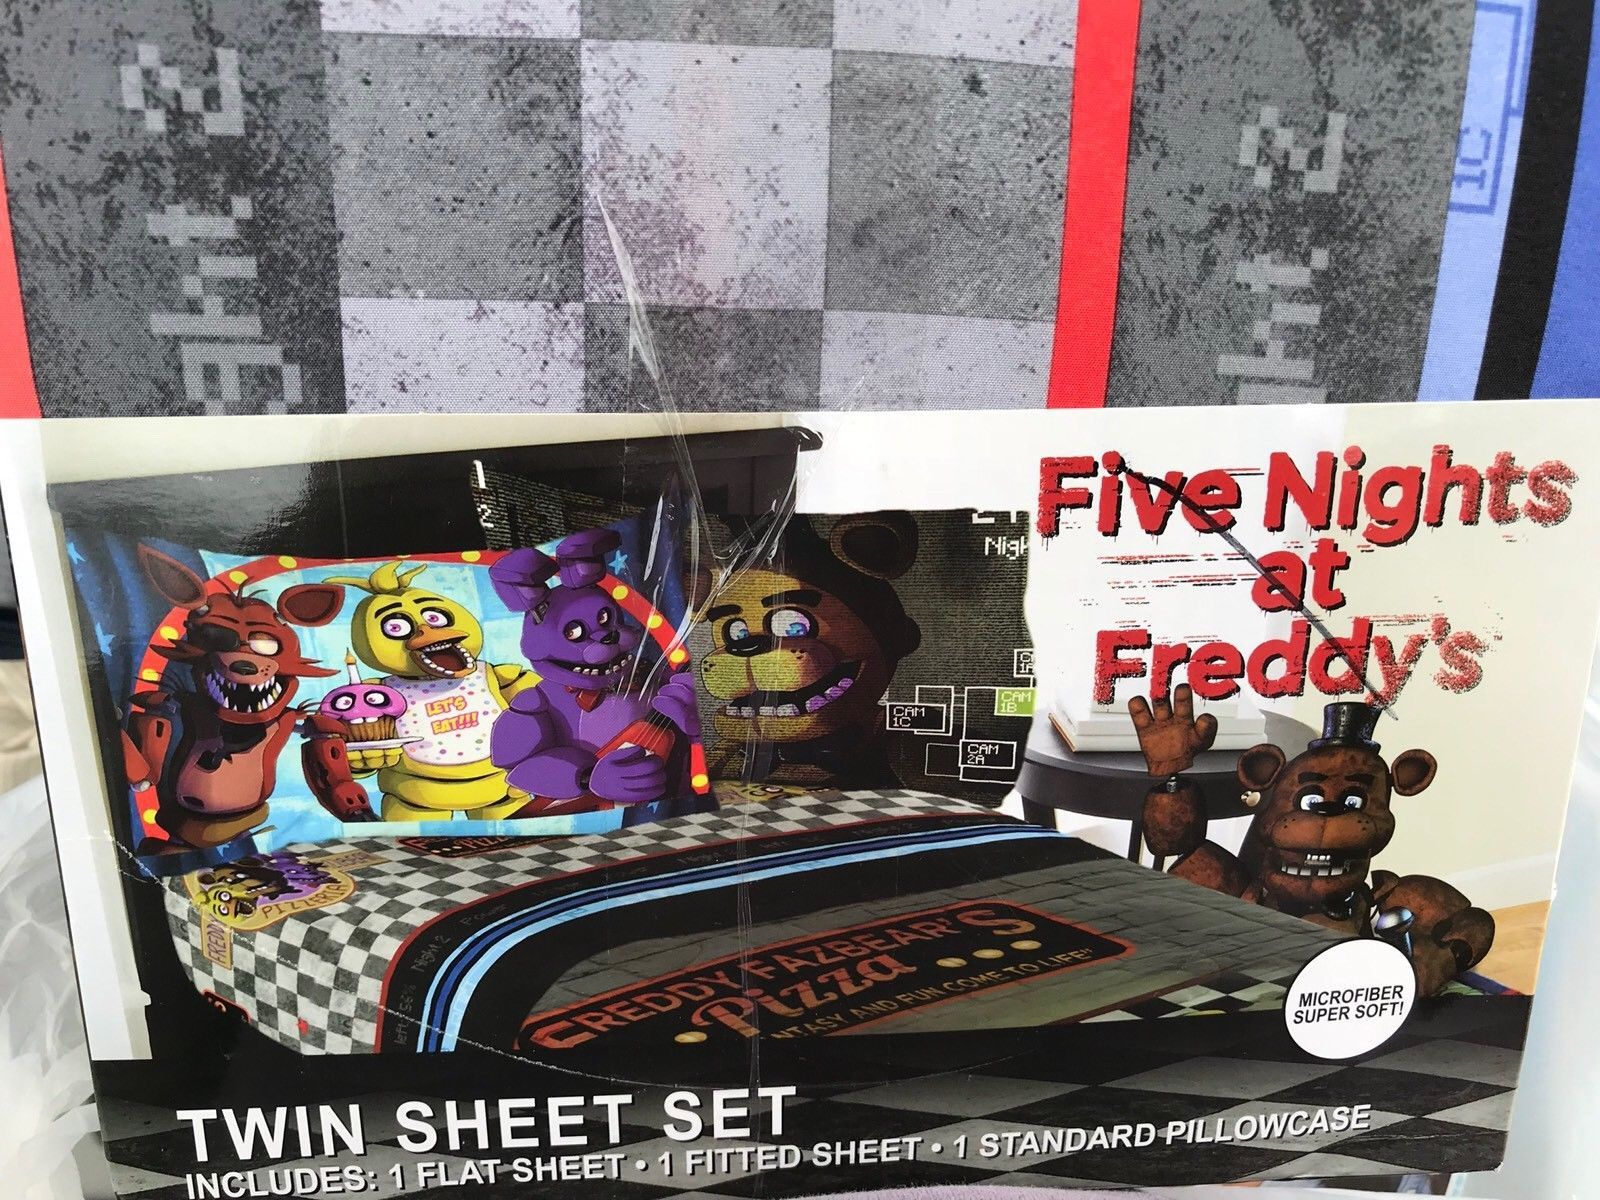 Five Nights at Freddy's Twin Sheet Set By Franco Microfiber Super Soft New